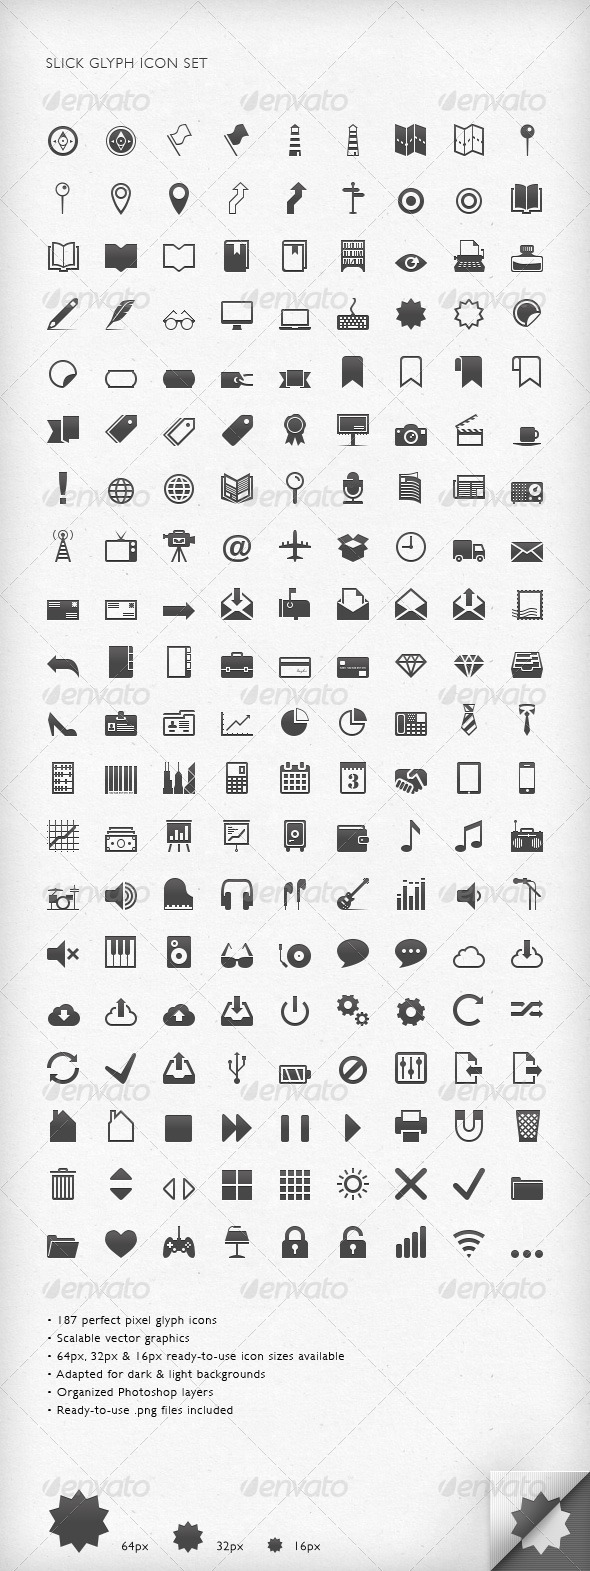 Slick Glyph Icon Set - Web Icons